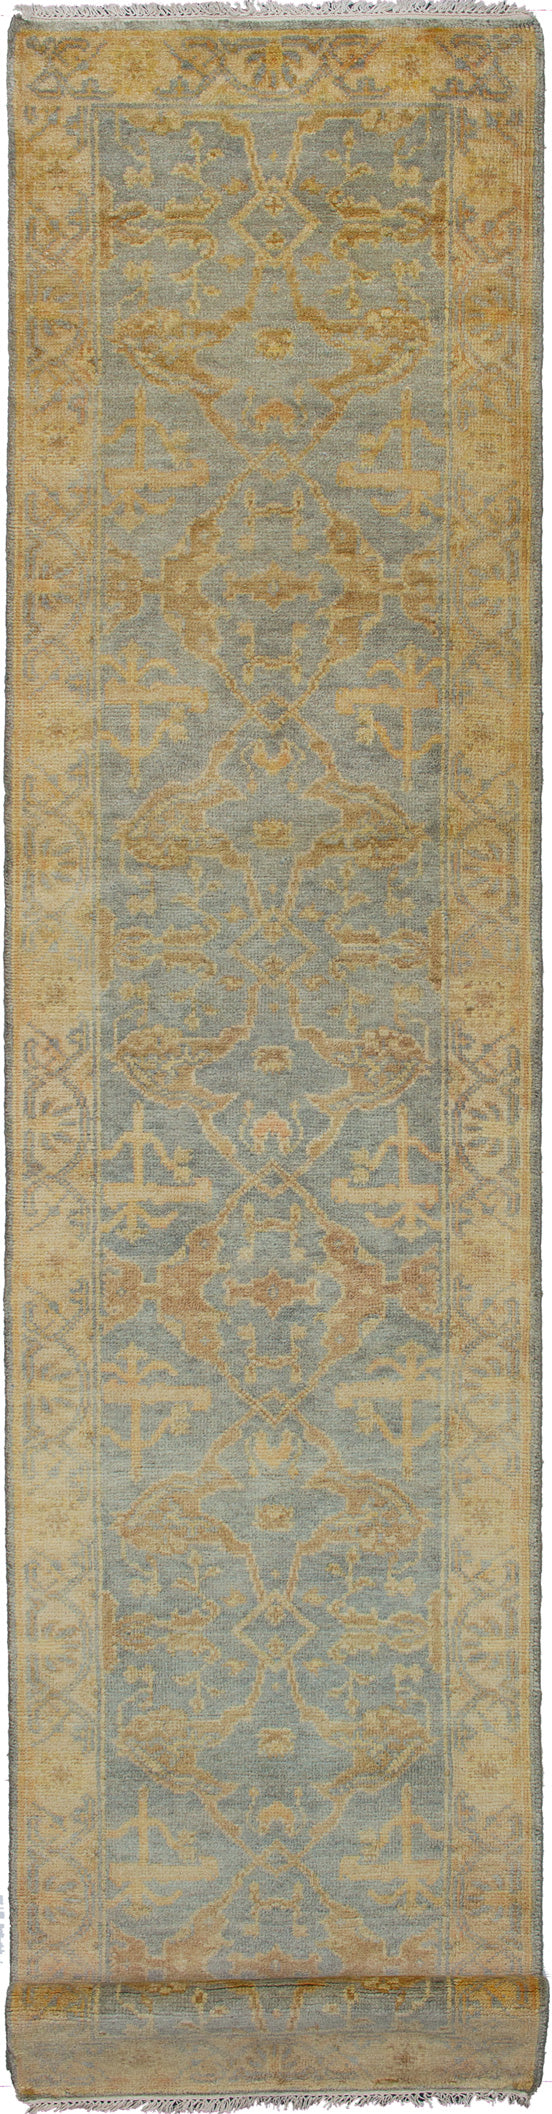 Hand-knotted Indian Bohemian  Traditional Royal-Ushak Runner rug  Grey 2.9 x 11.1